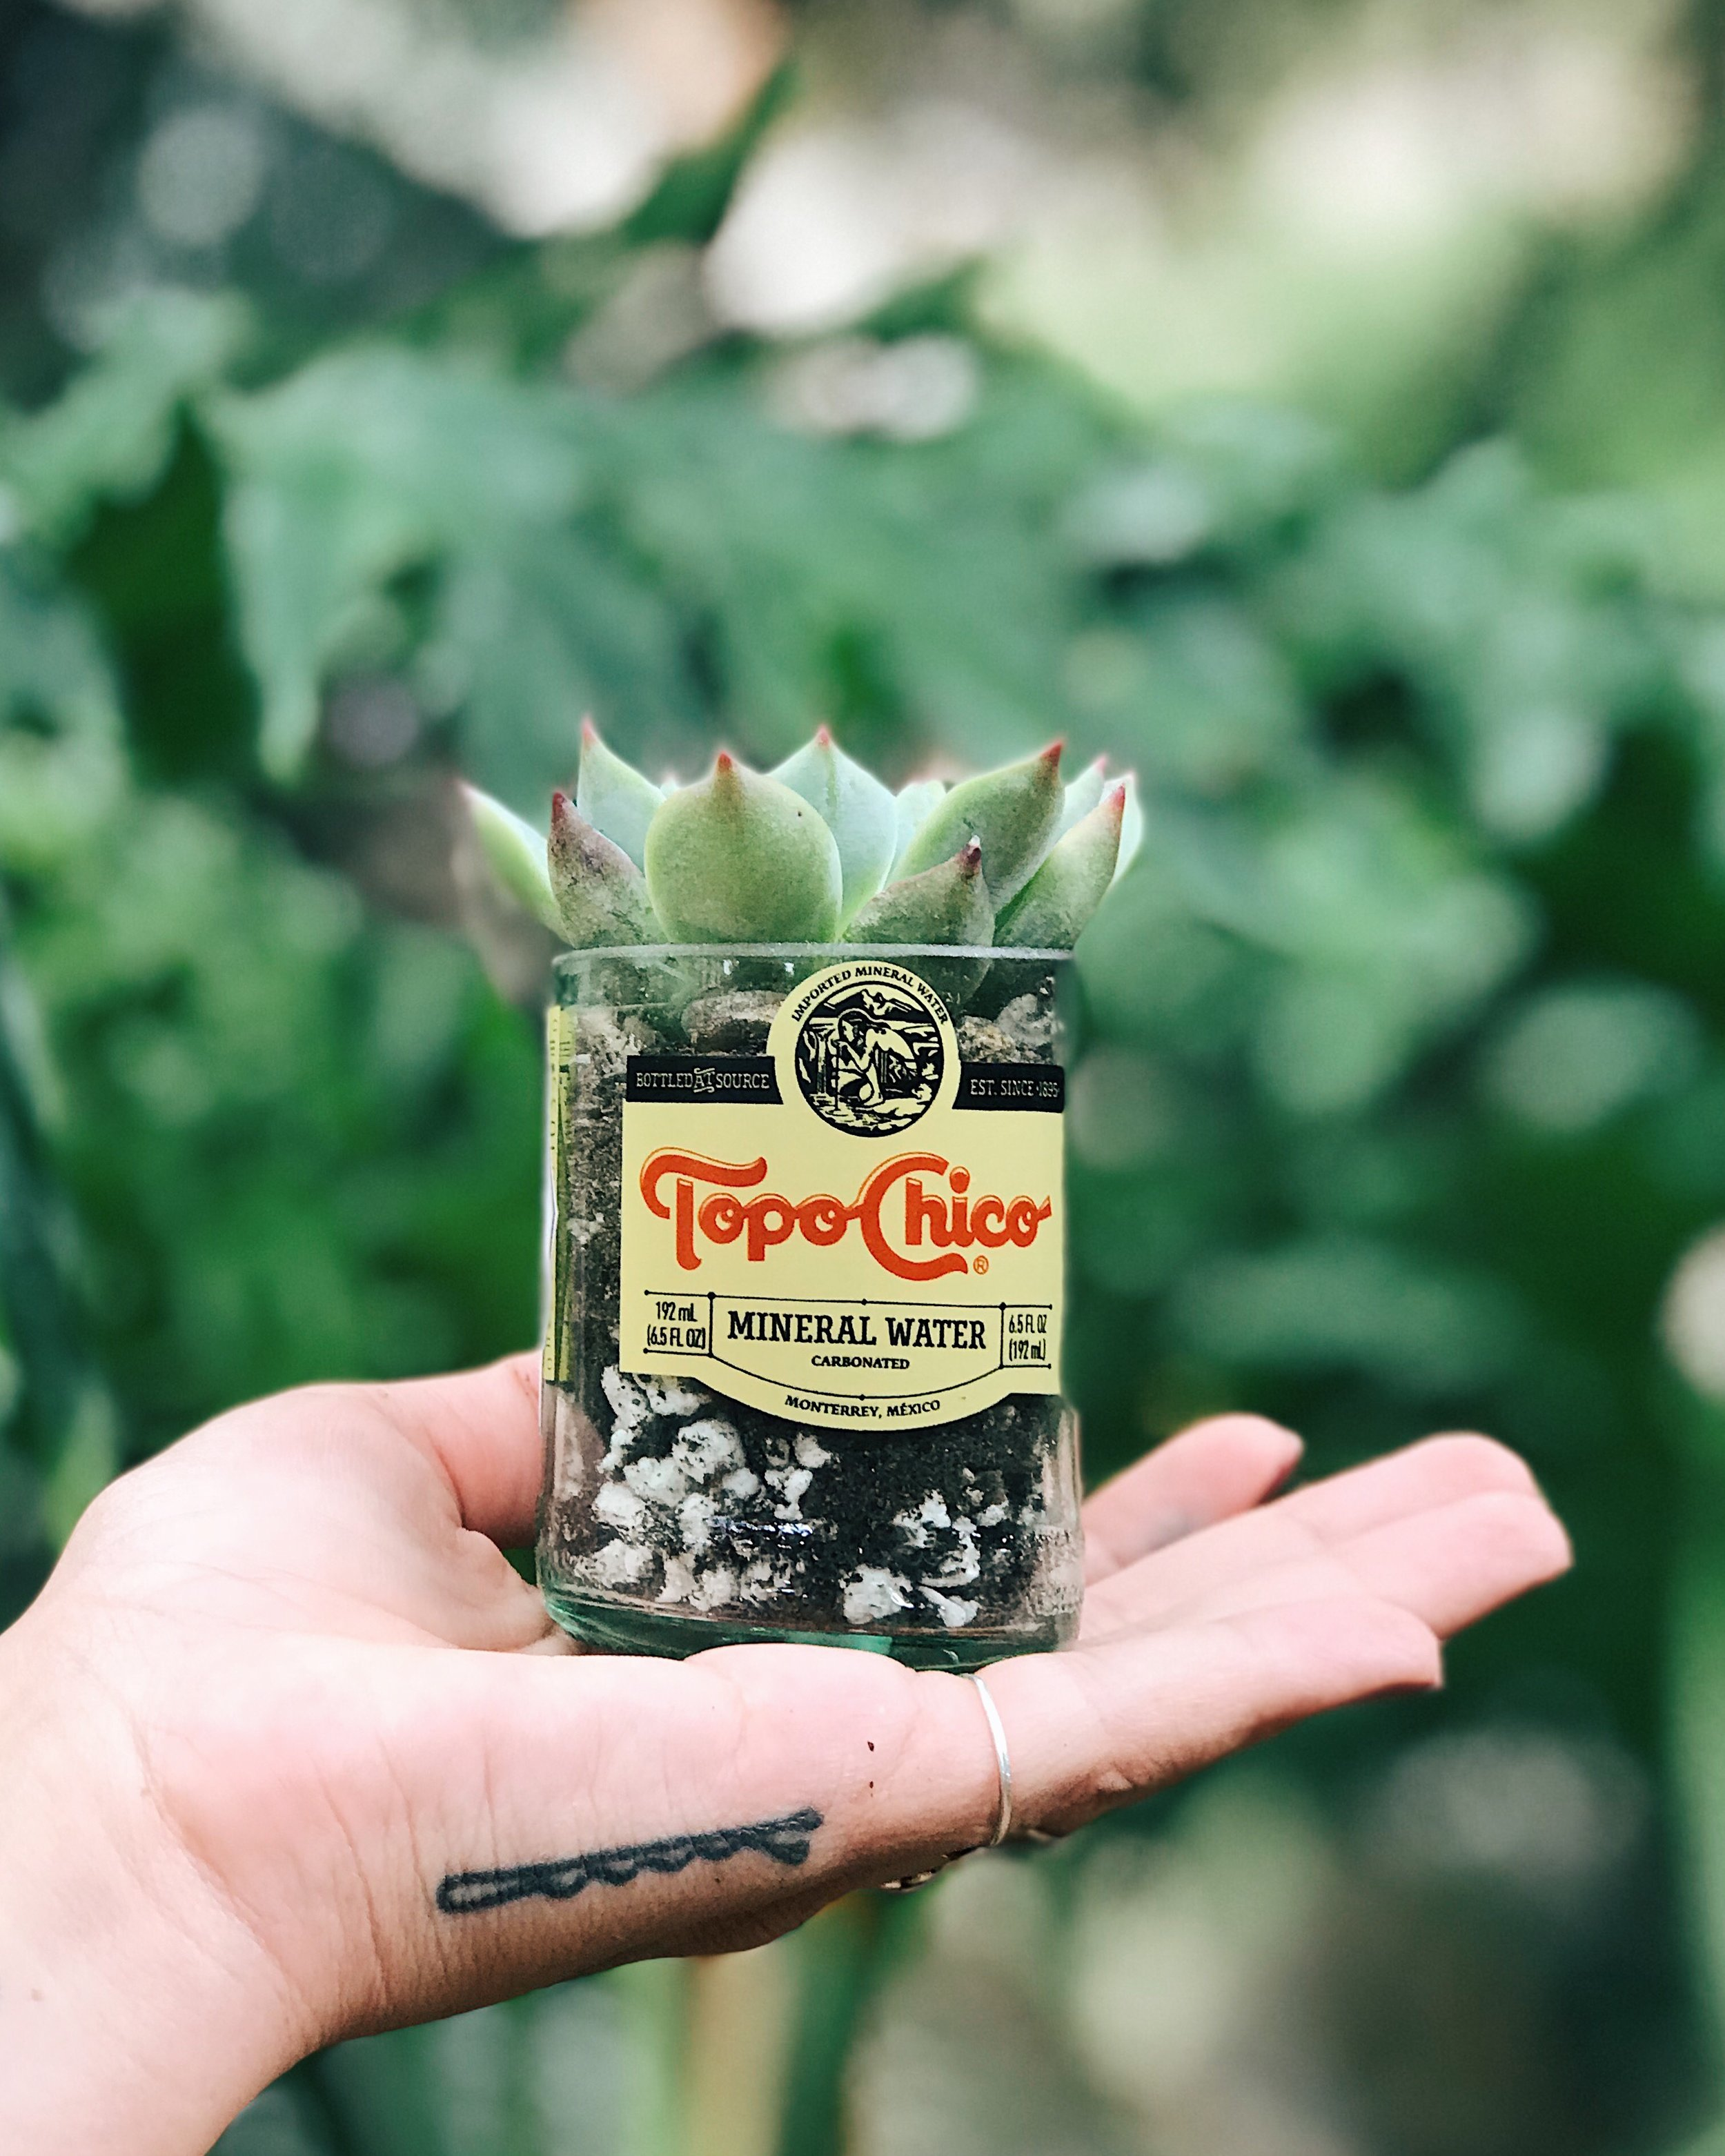 Mini Topo Chico planters. Sold with out the plant so that you can put what ever you want in and watch it thrive. Our planters come with drainage holes, so that your plant can drain all the way though and live a happy life.